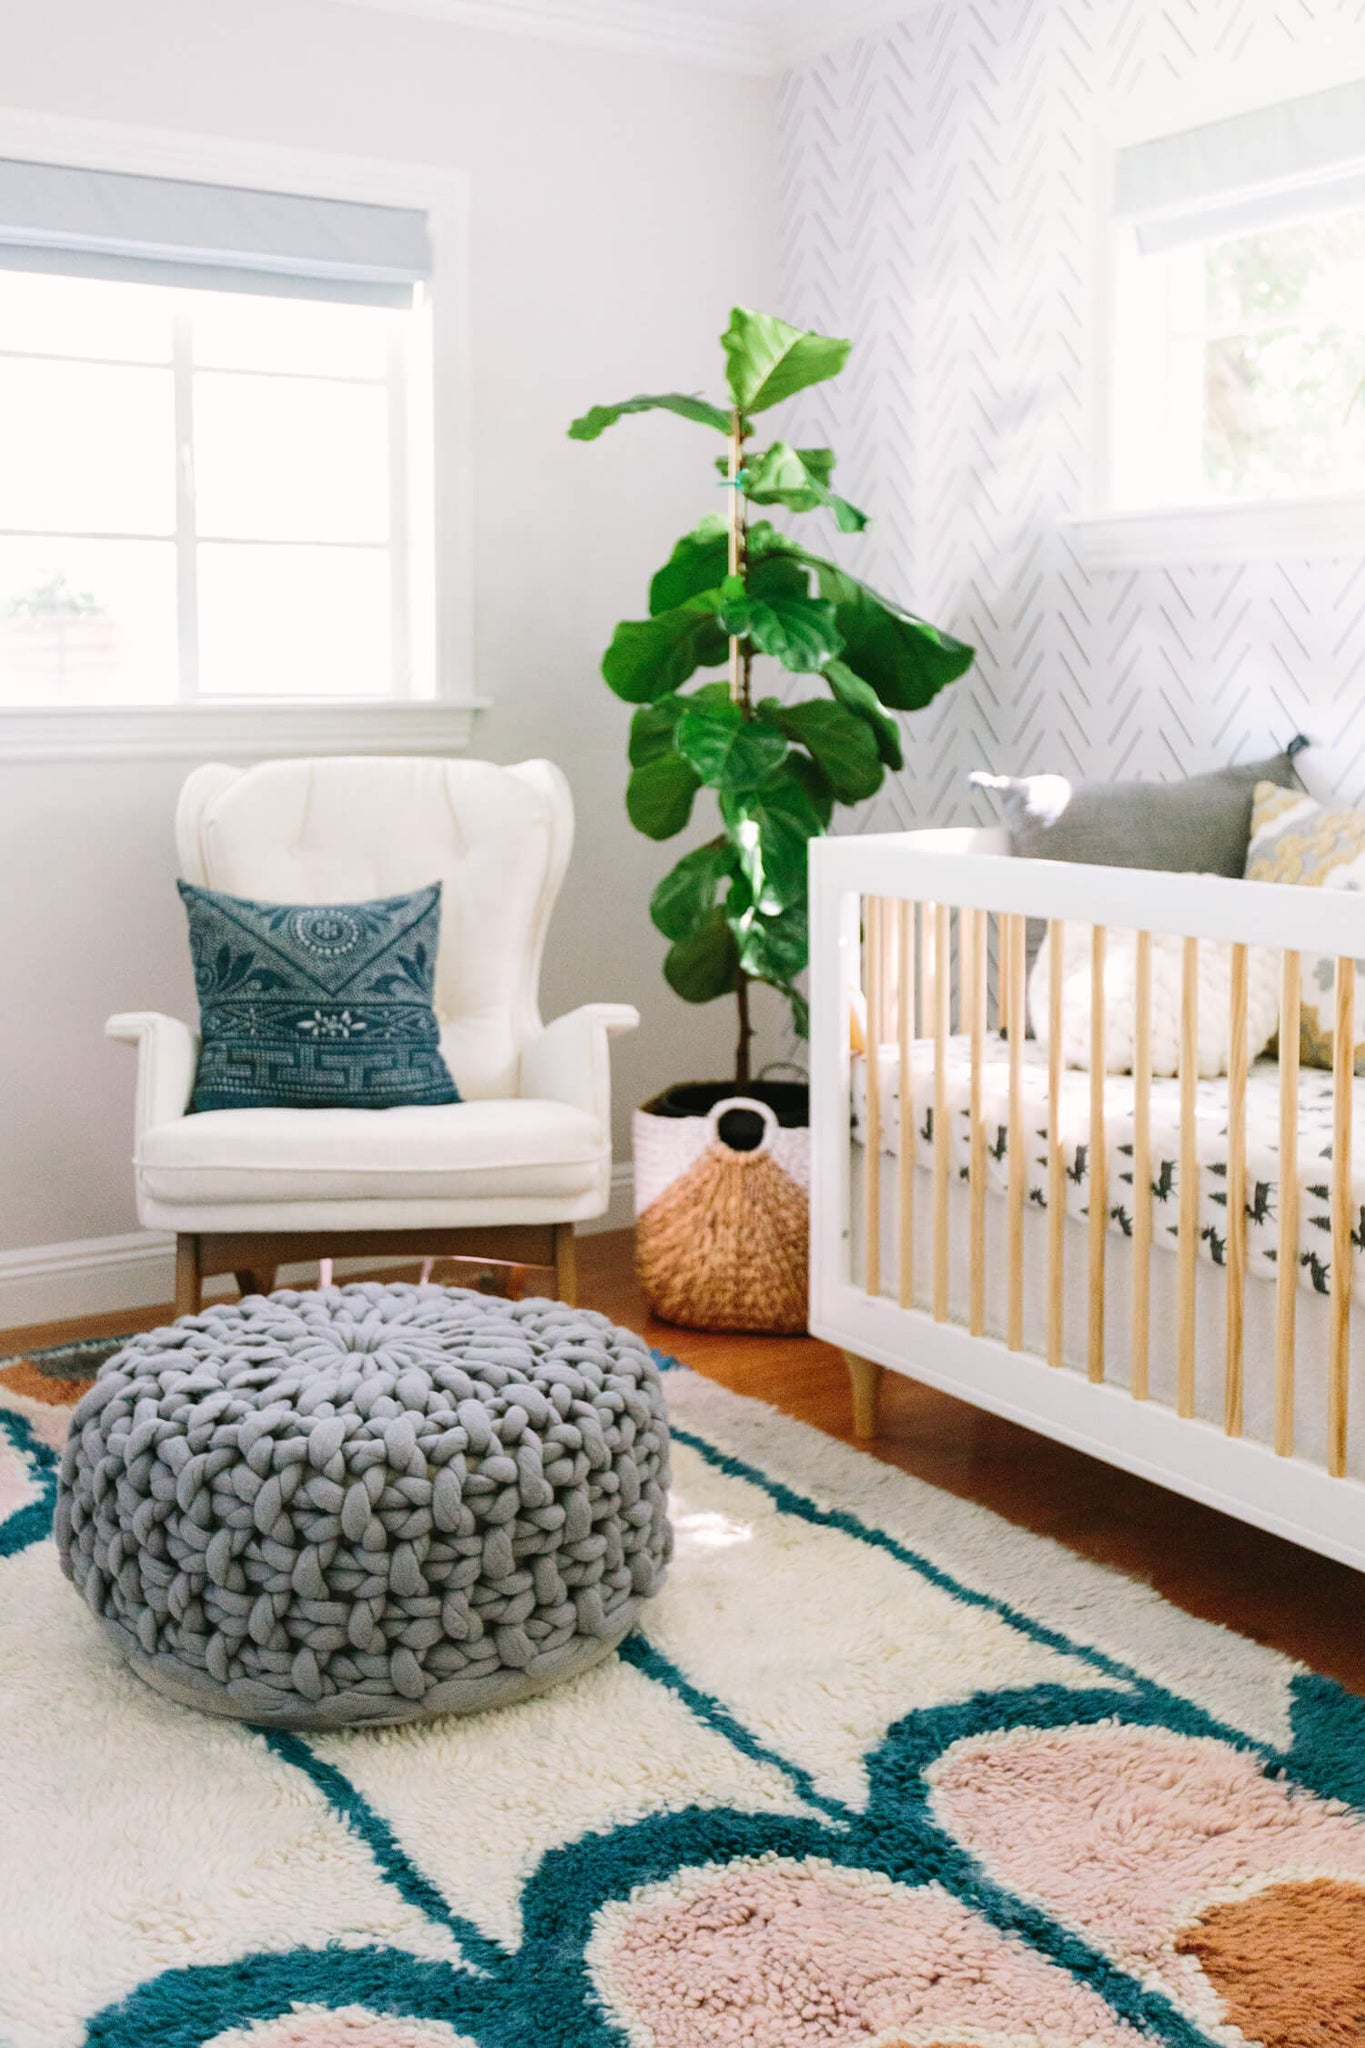 Gender neutral baby room with white rocking chair, colorful accents, removable wallpaper and forest animal theme.